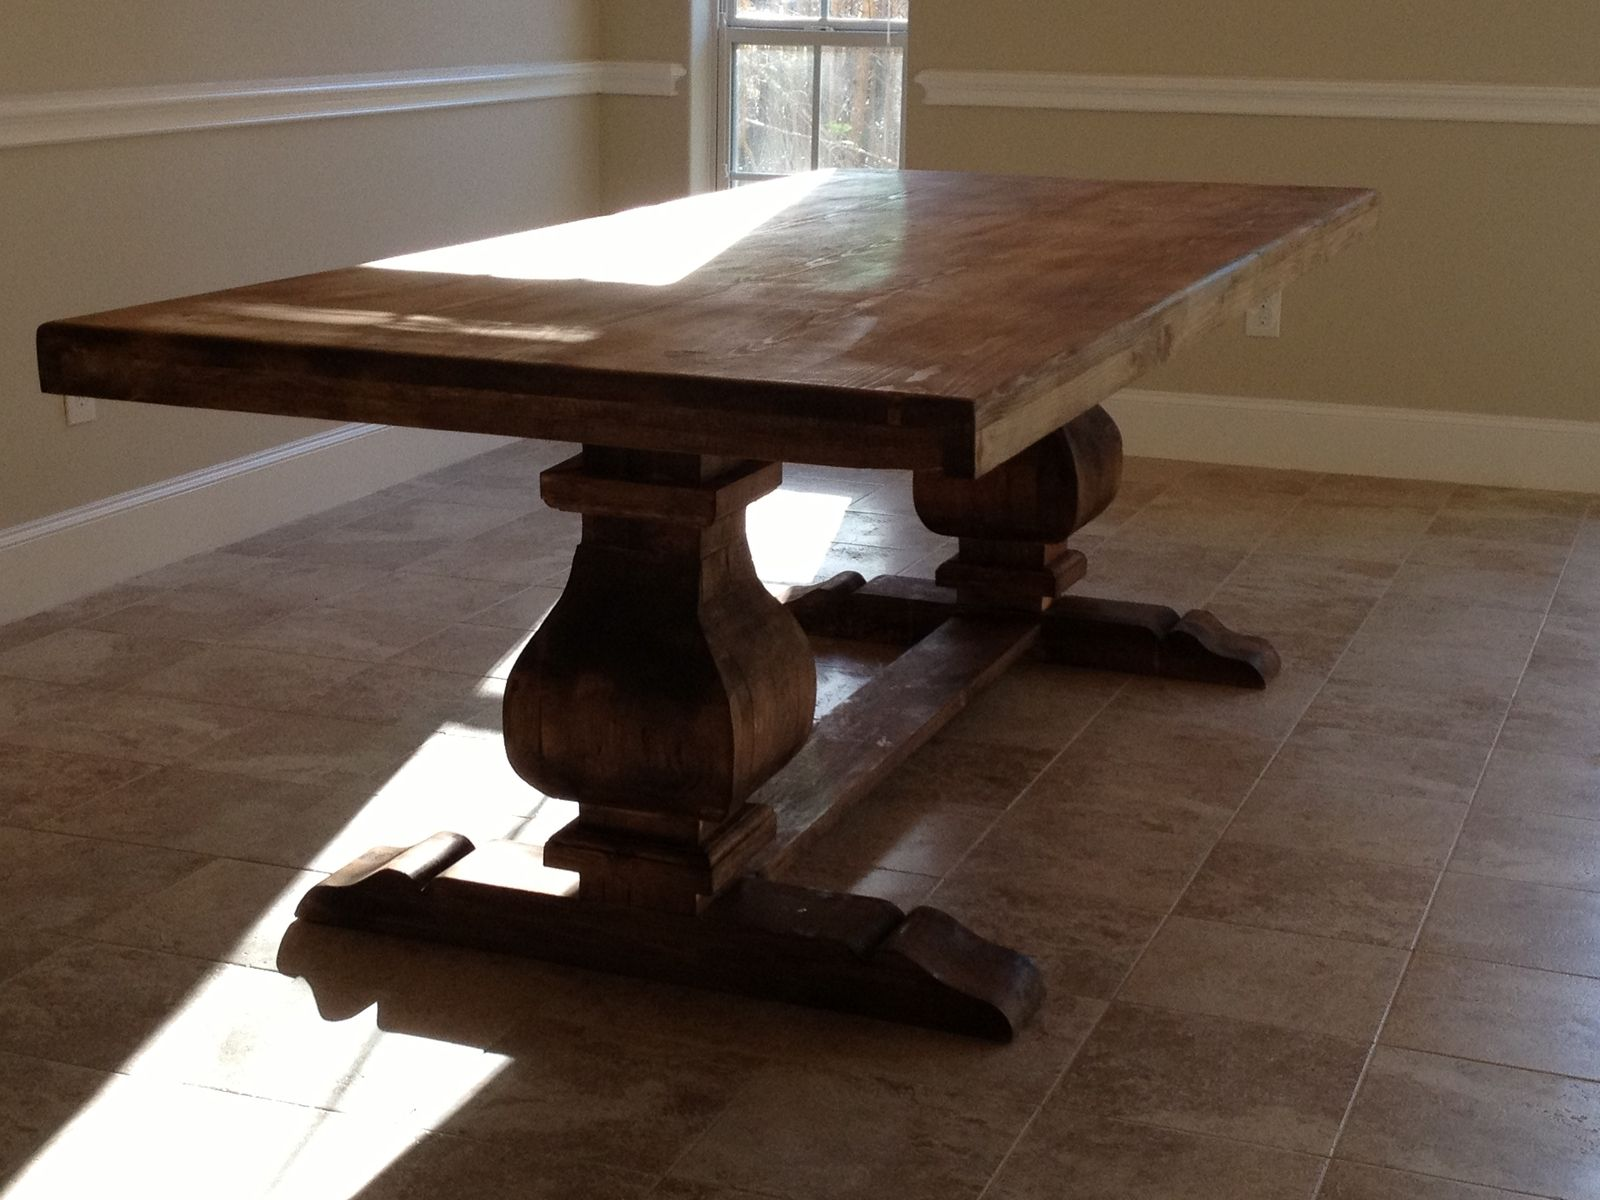 7ft dining room table custom 7ft trestle table solid wood by hinojosa custom